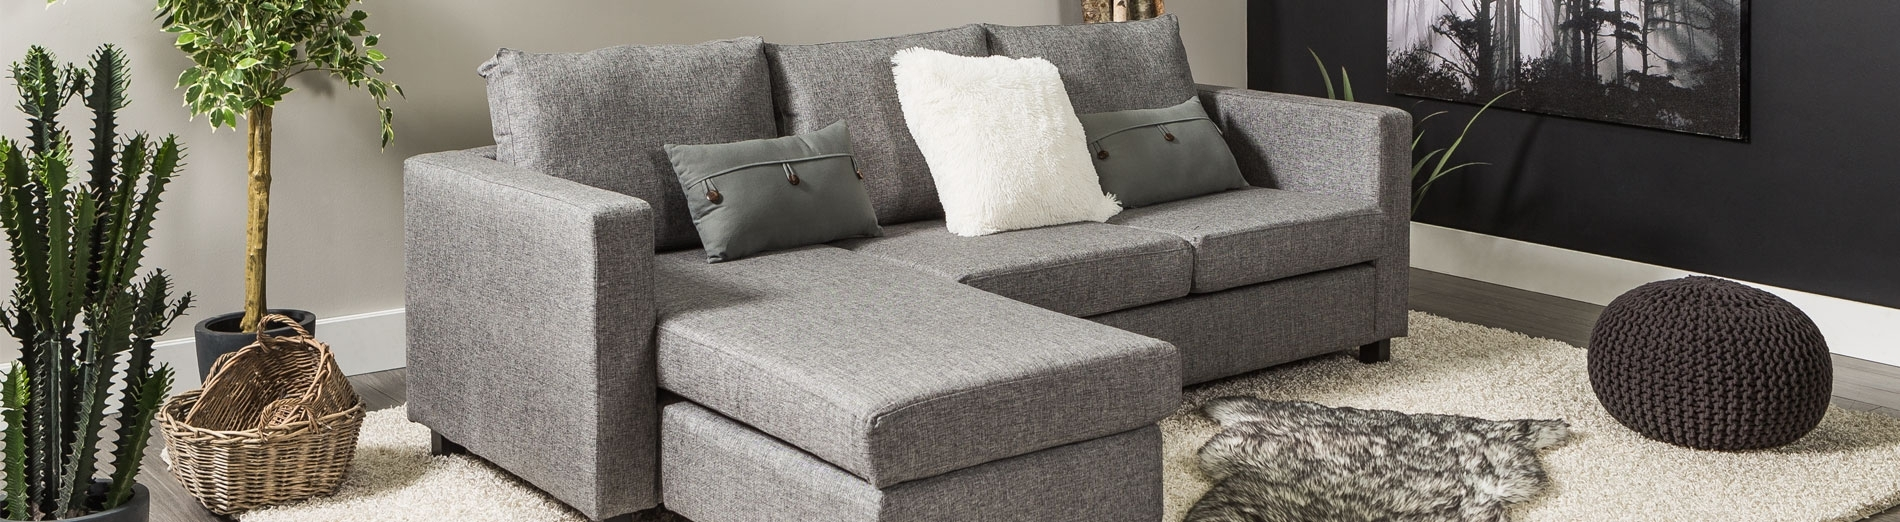 Sofas & Sofabeds & Futons | Living Room Furniture | Furniture | Jysk Pertaining To Jysk Sectional Sofas (Image 10 of 10)